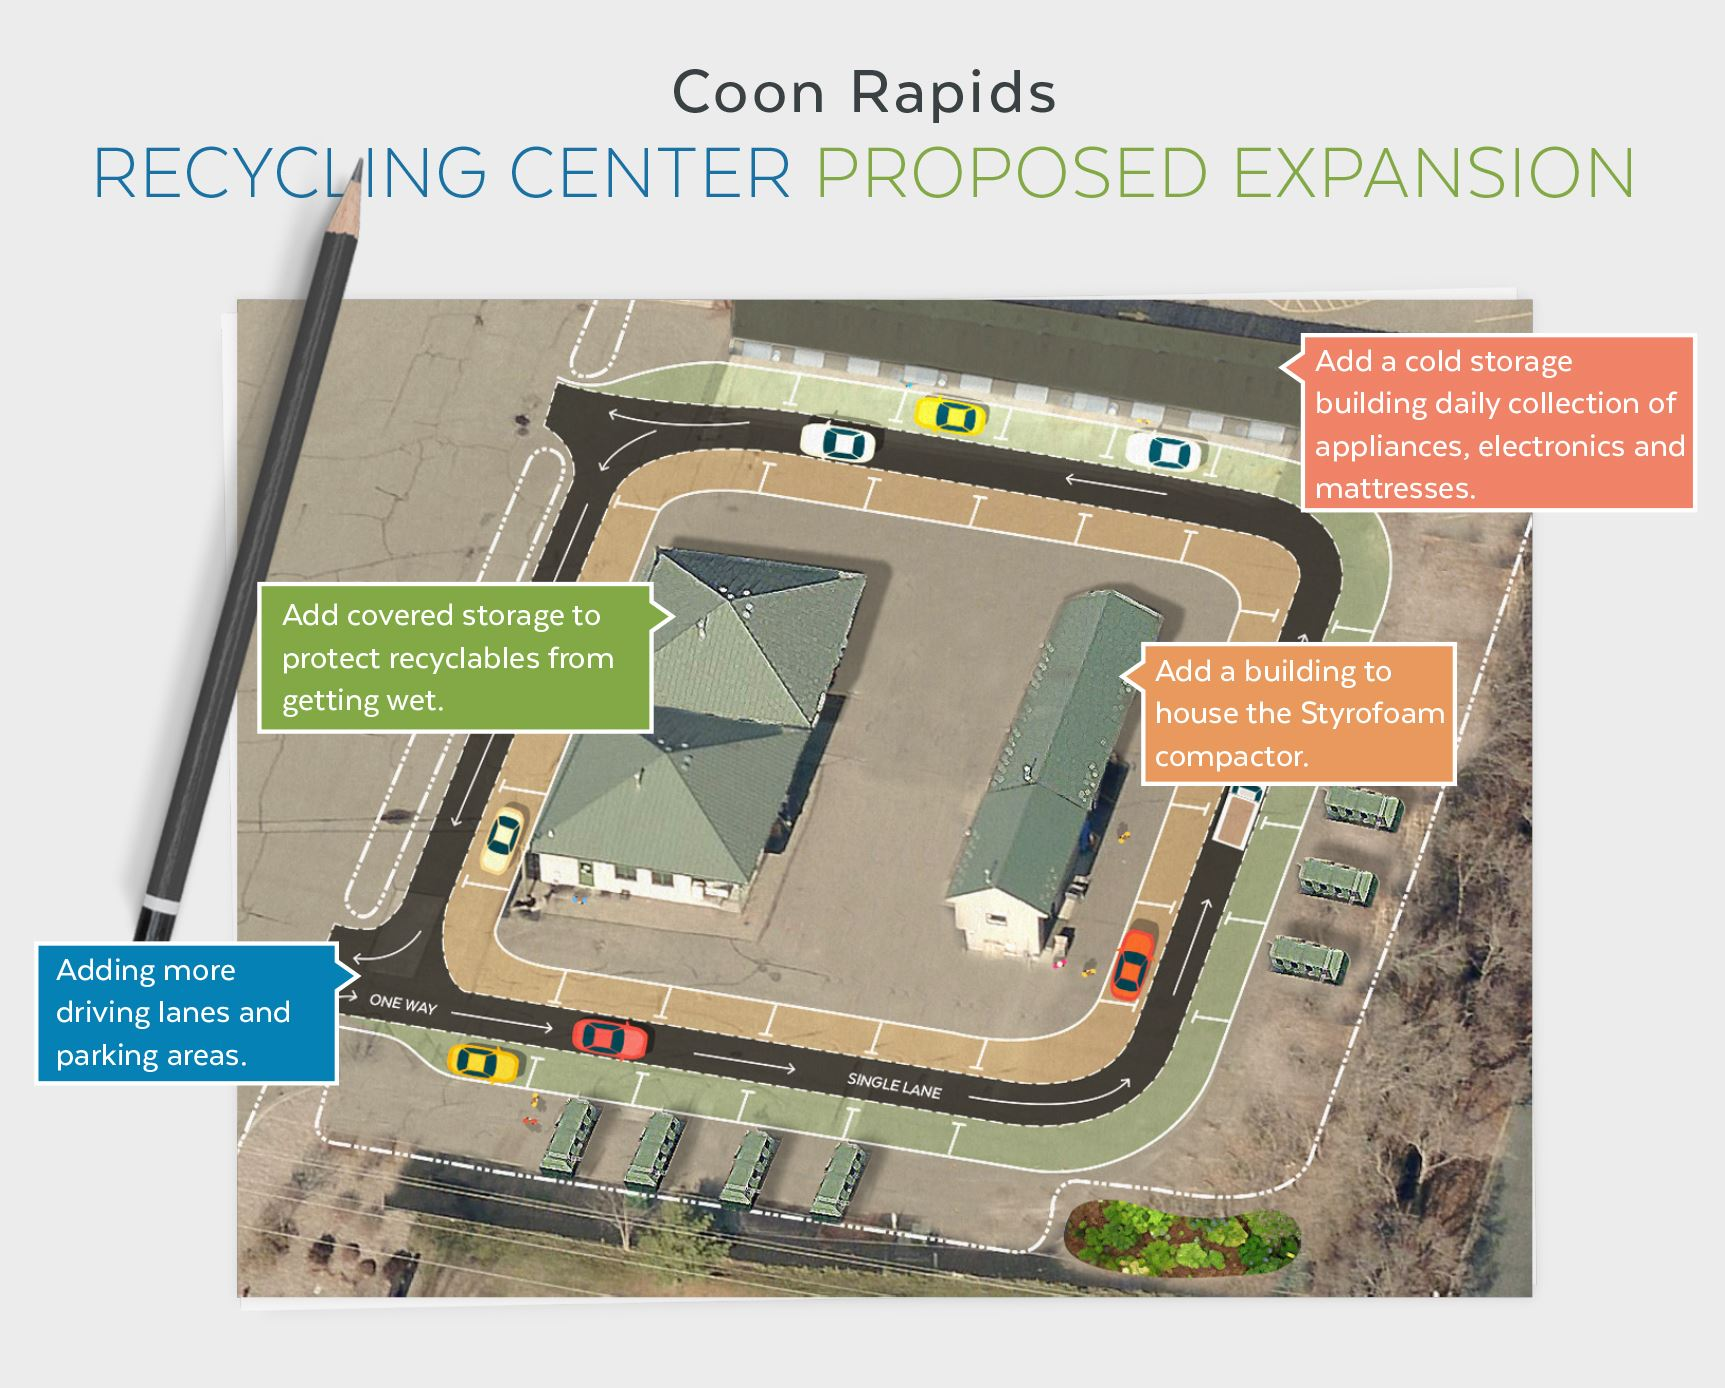 Recycling Center Proposed Expansion Site Plan